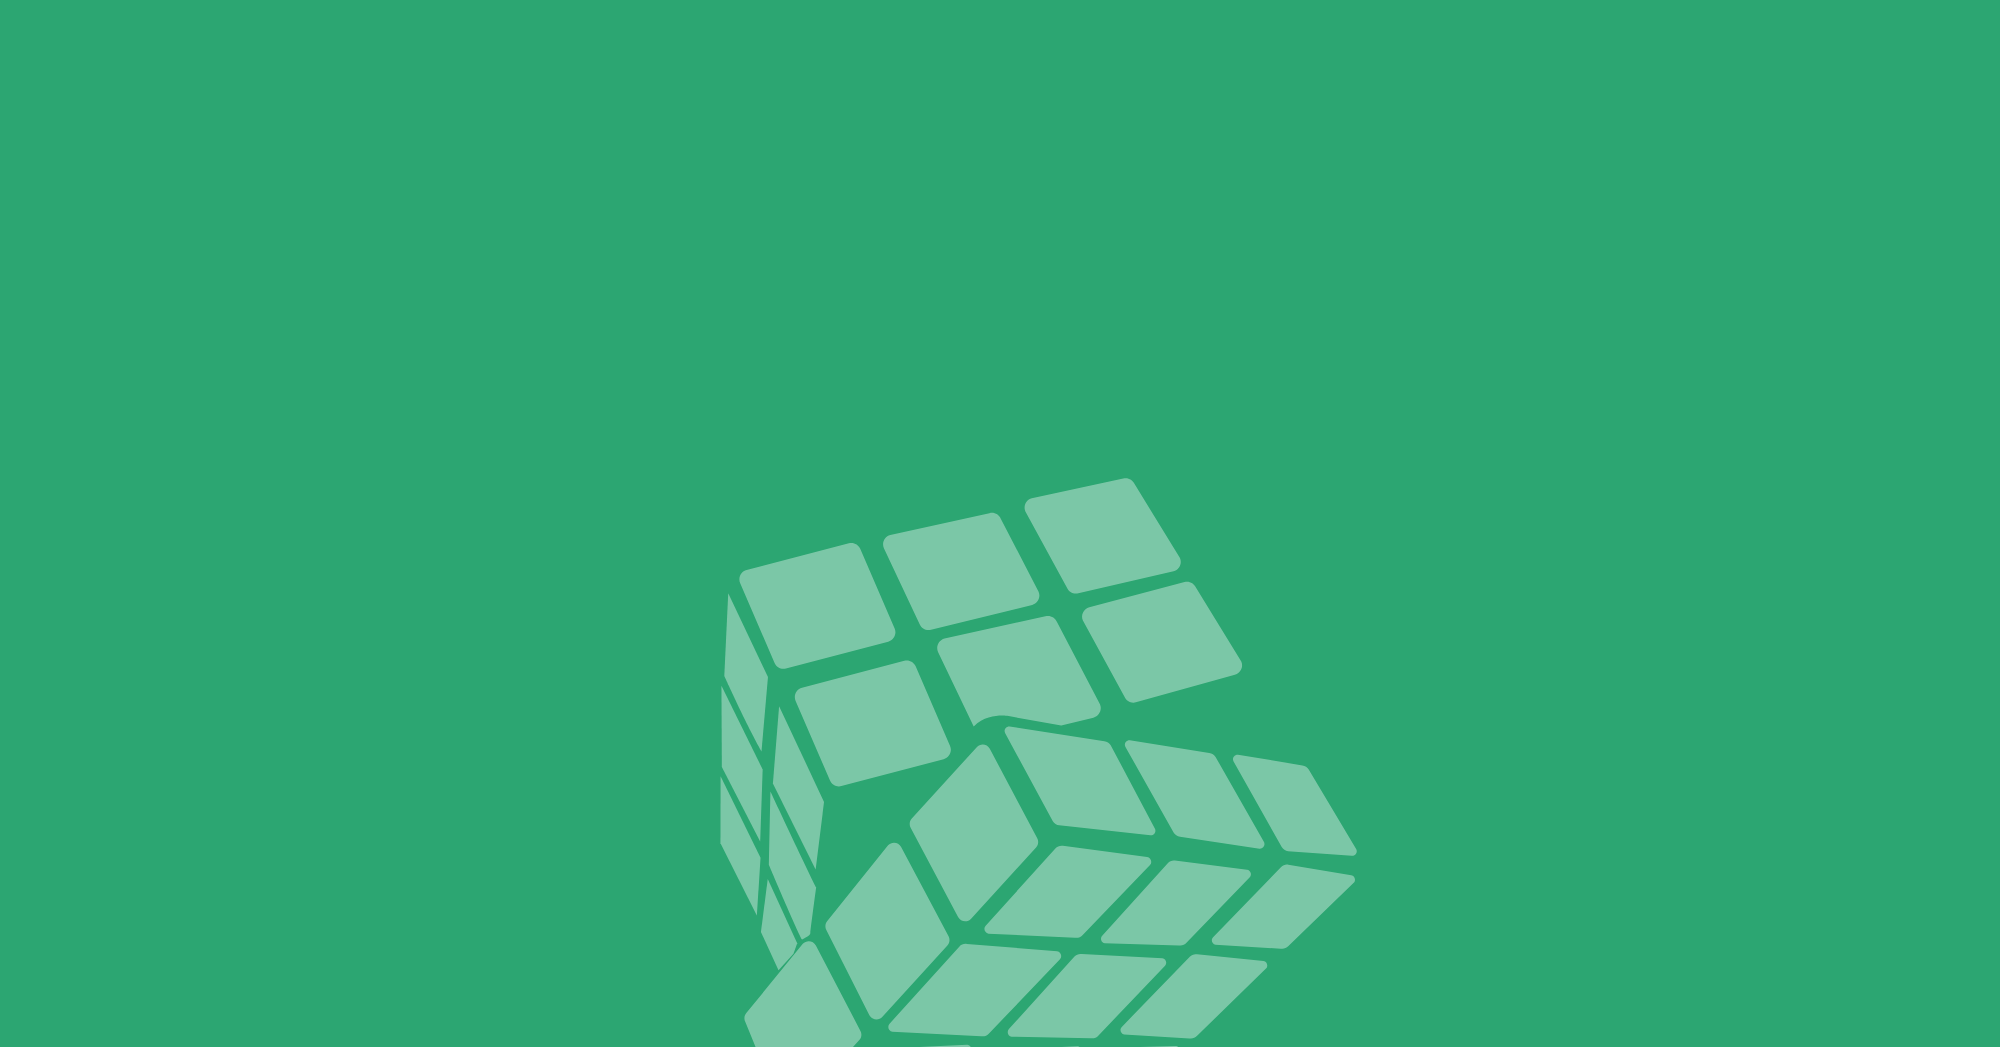 Pale green Rubik's cube with one layer turning over green background.